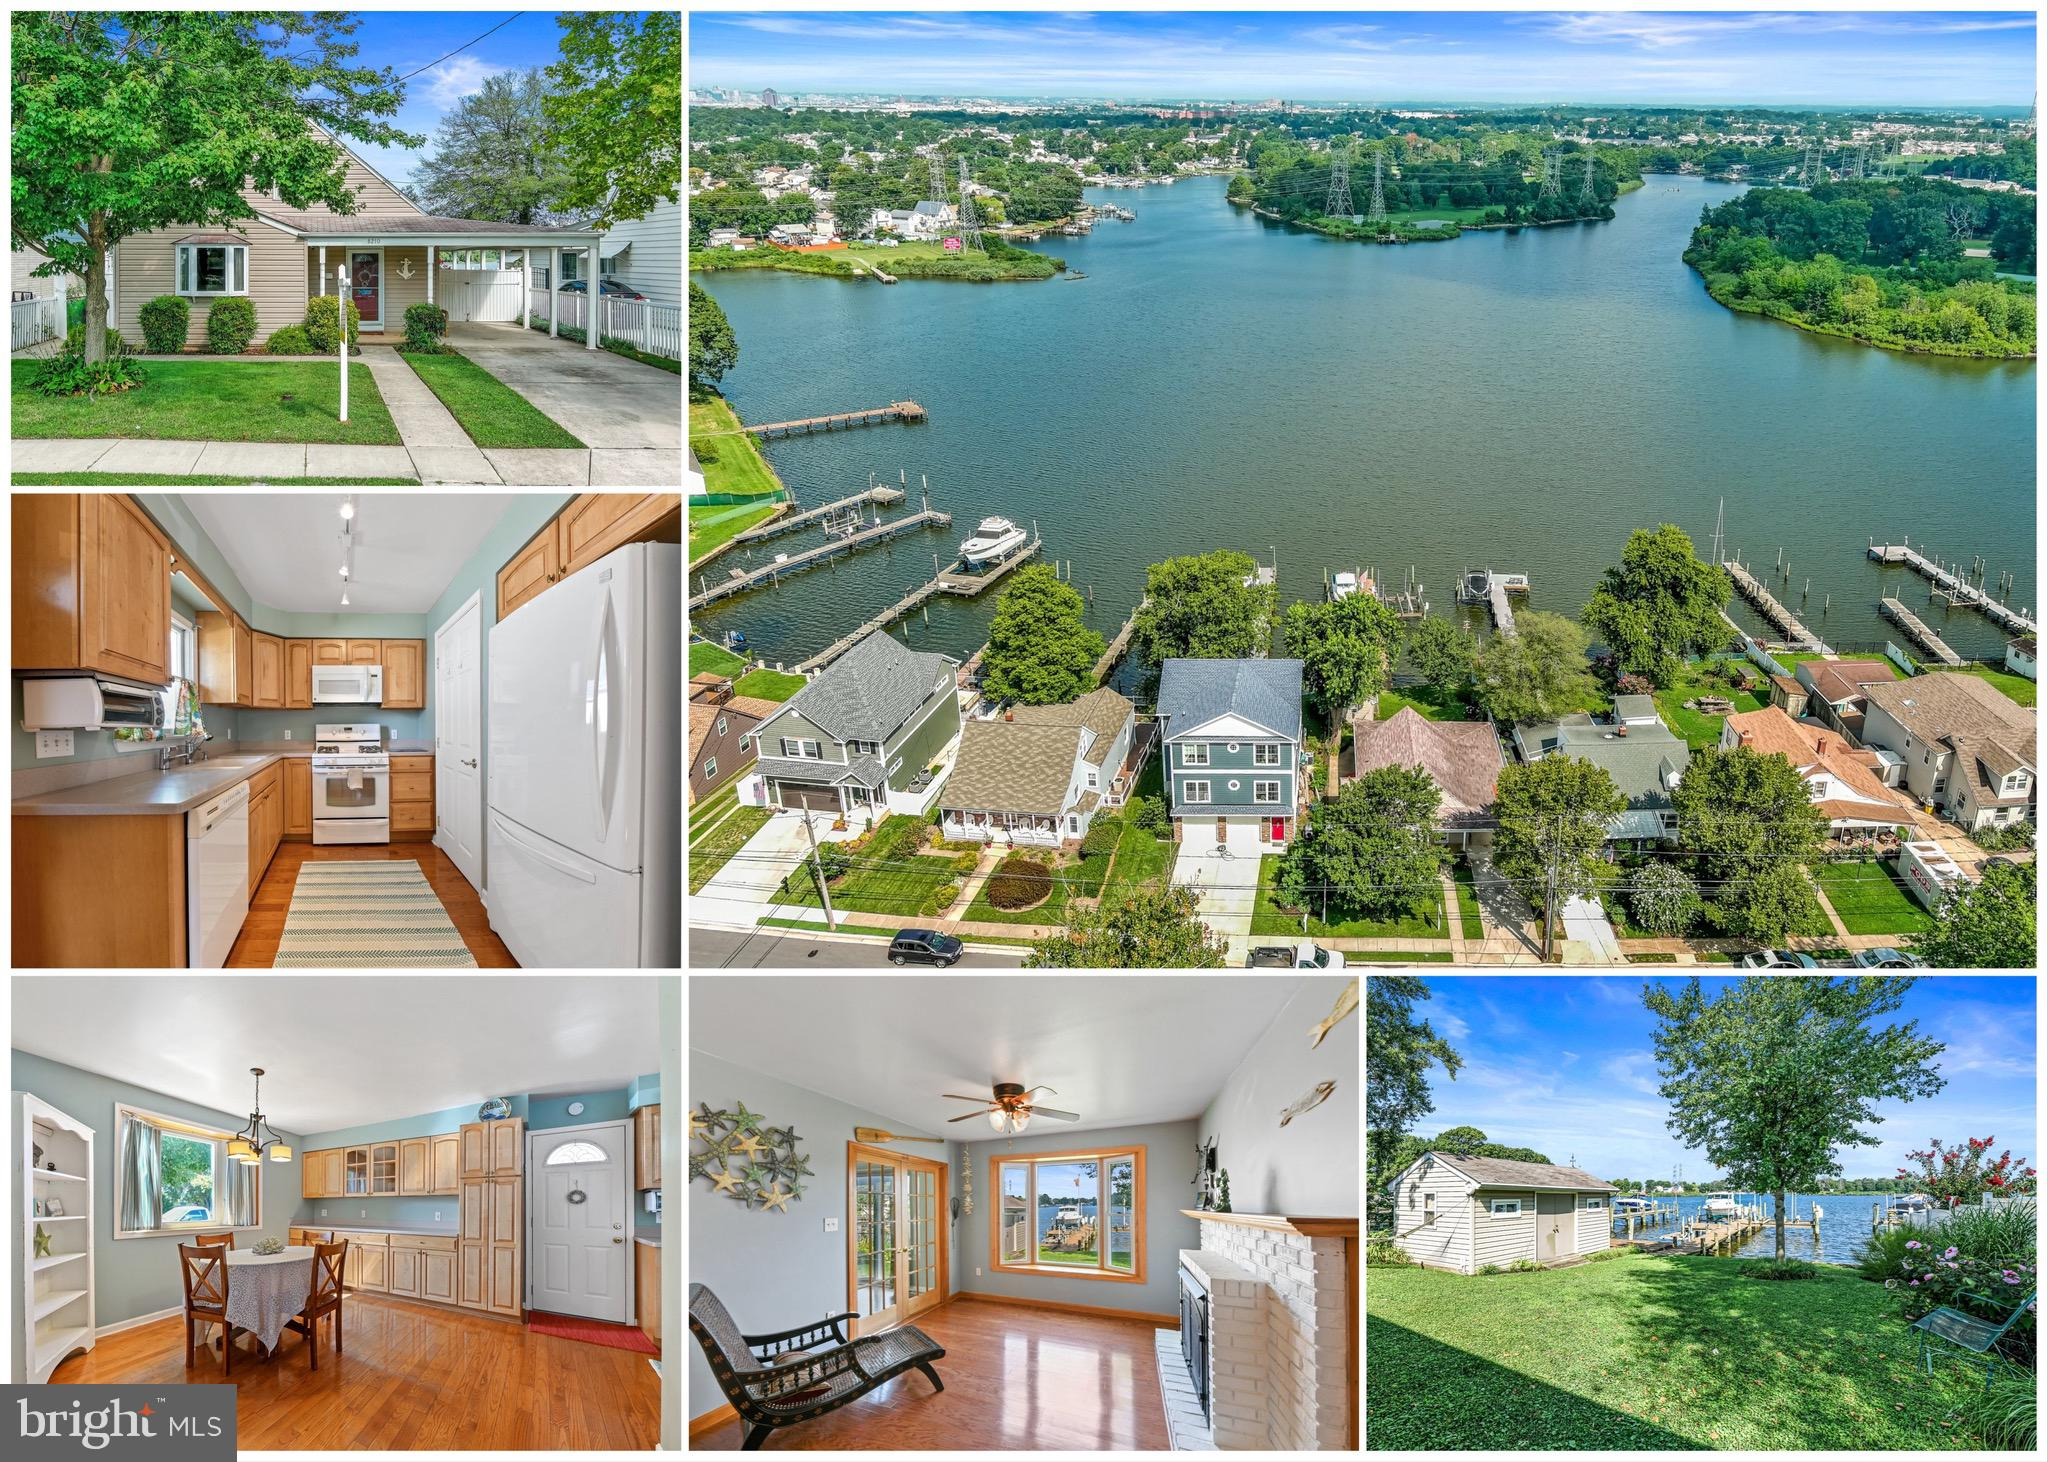 This waterfront property is ready for you to move in and enjoy!  Lovingly cared for and updated, thi